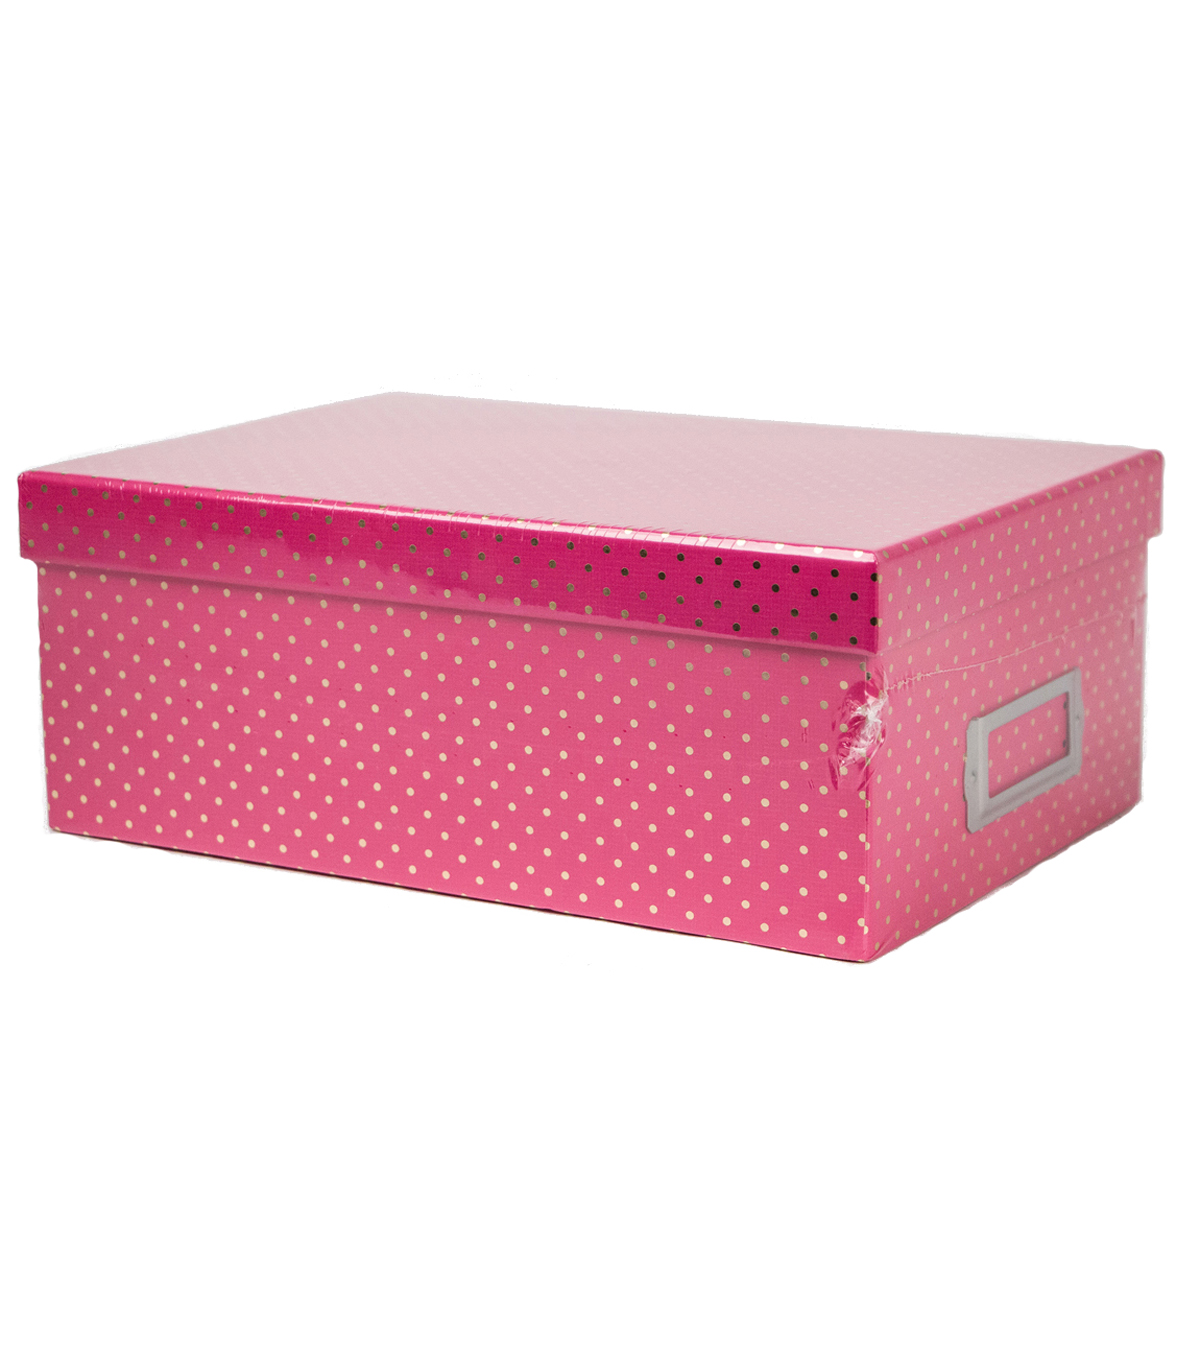 DCWV Pink with Gold Dots Storage Box JOANN